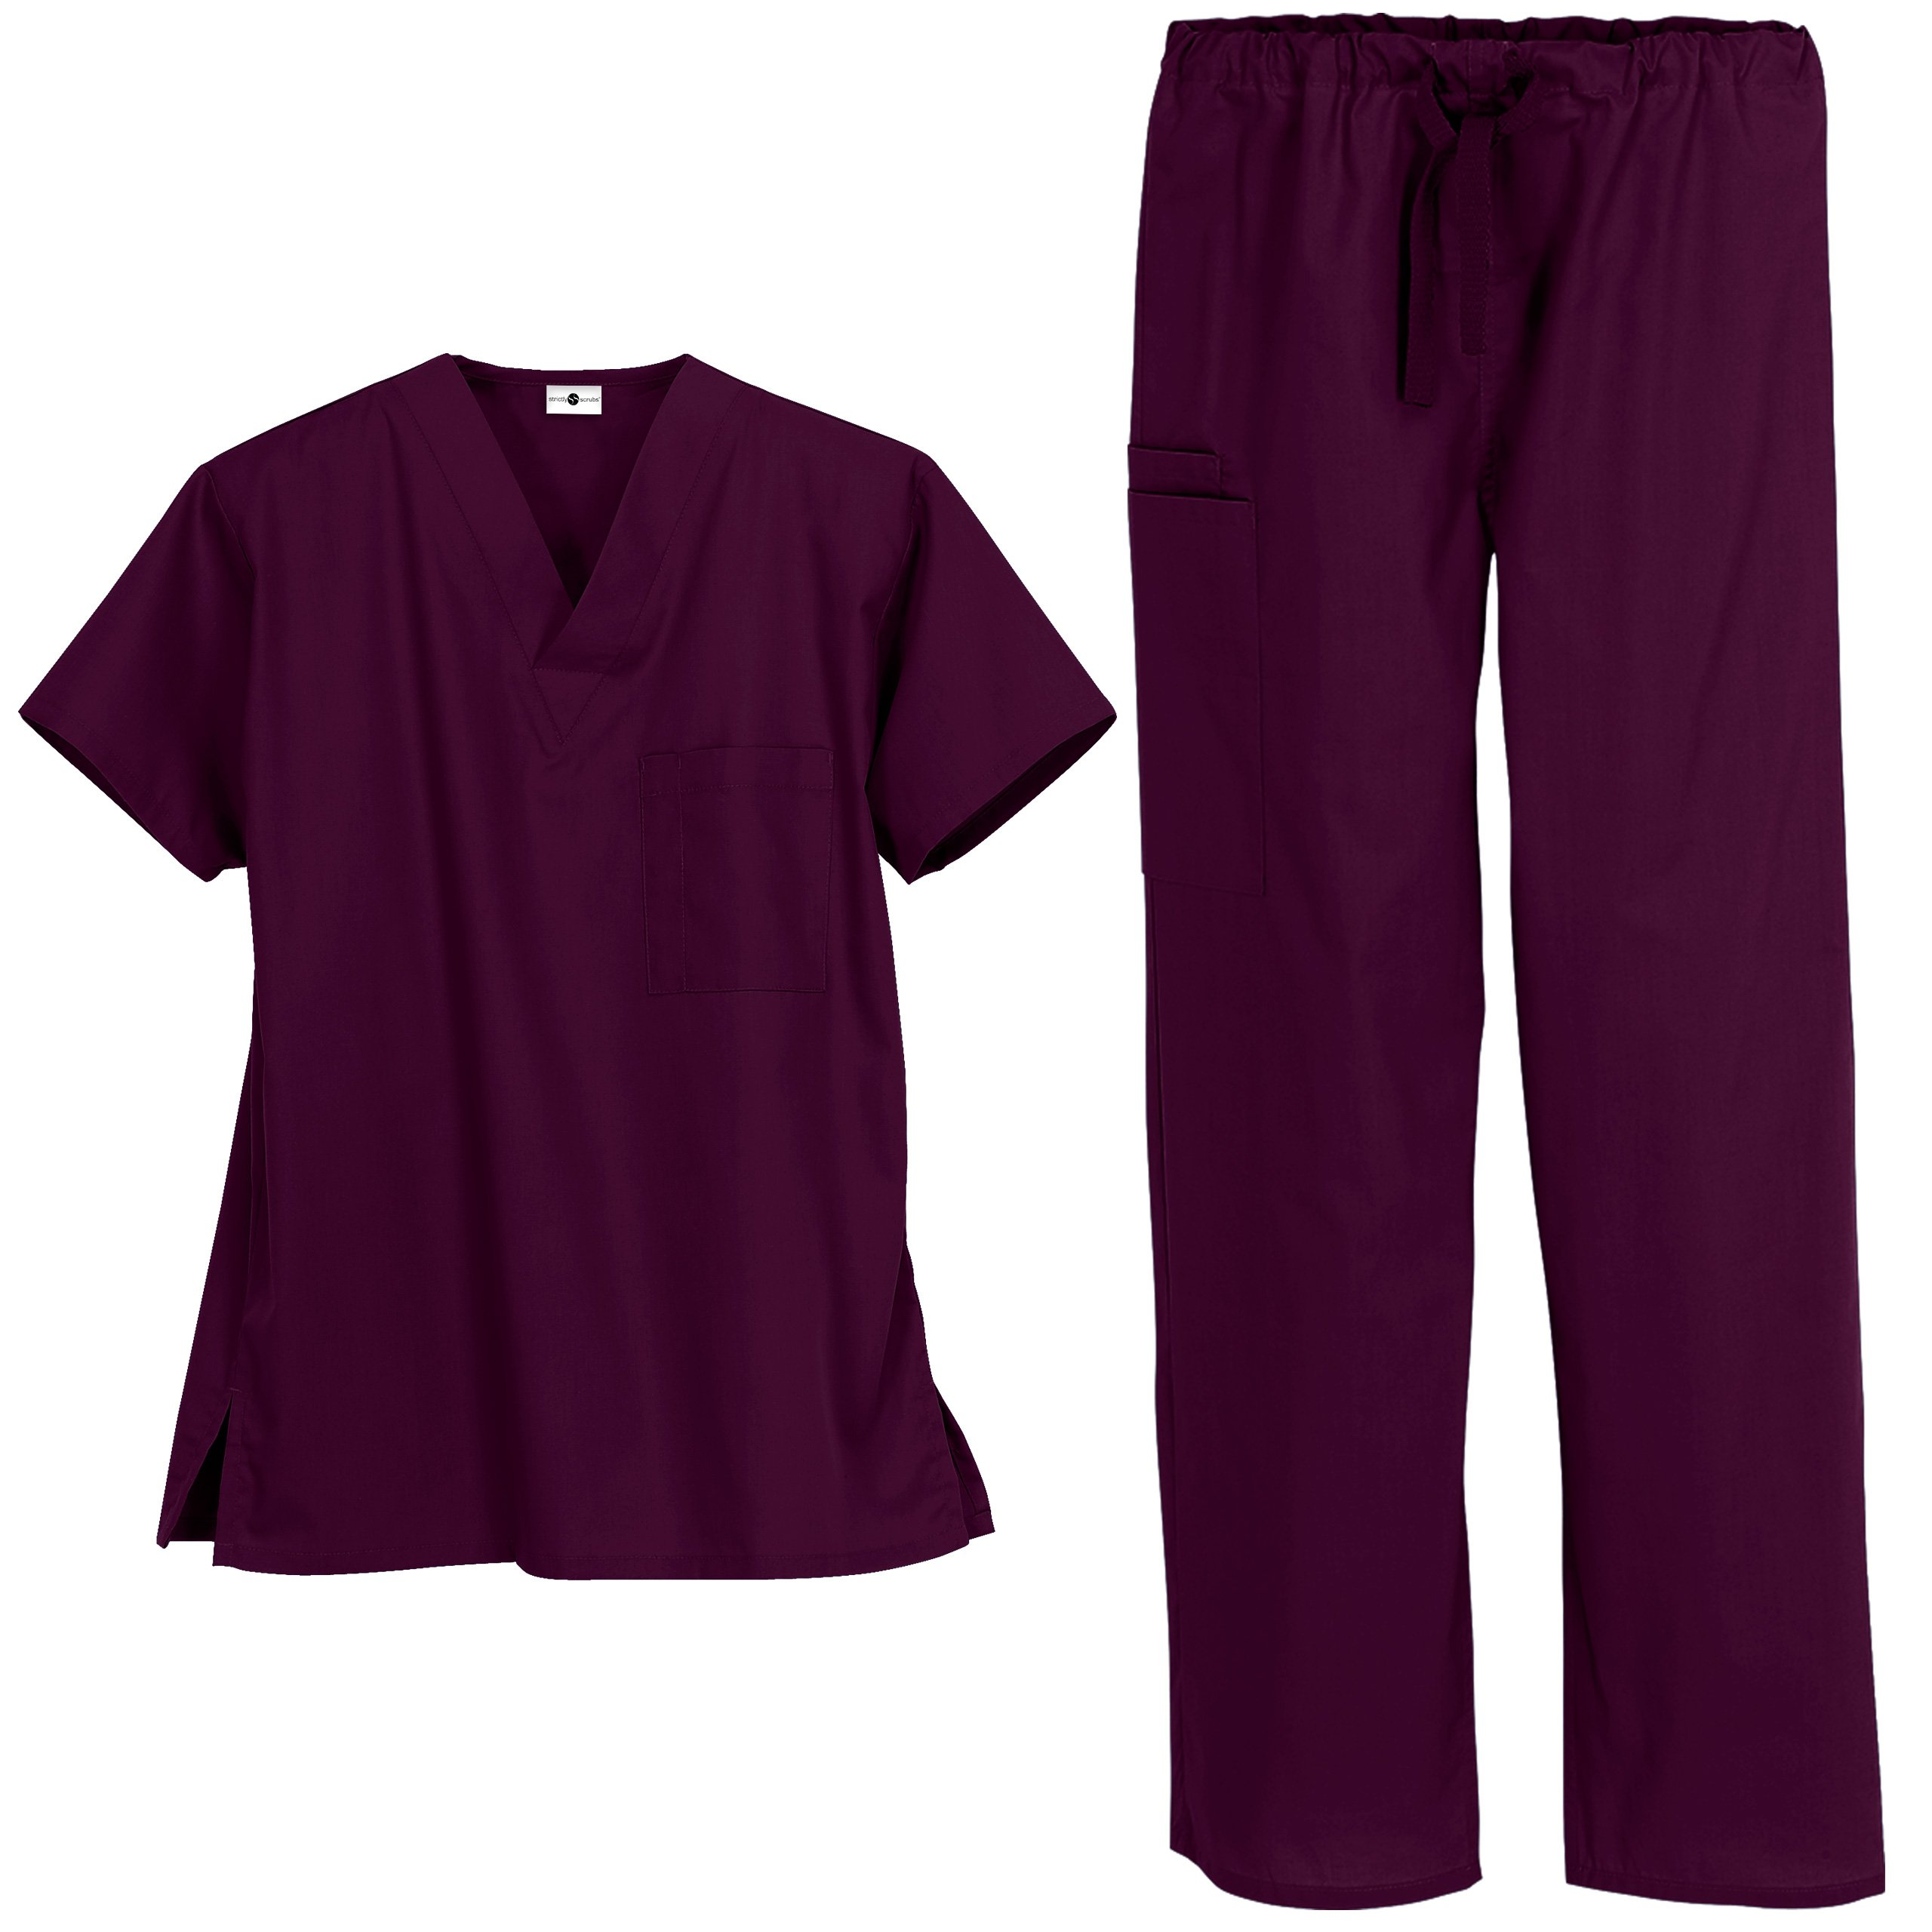 Unisex Medical Uniform Scrub Set – Includes V-Neck Top and Drawstring Pant (XS-3X, 13 Colors) (X-Large, Wine)